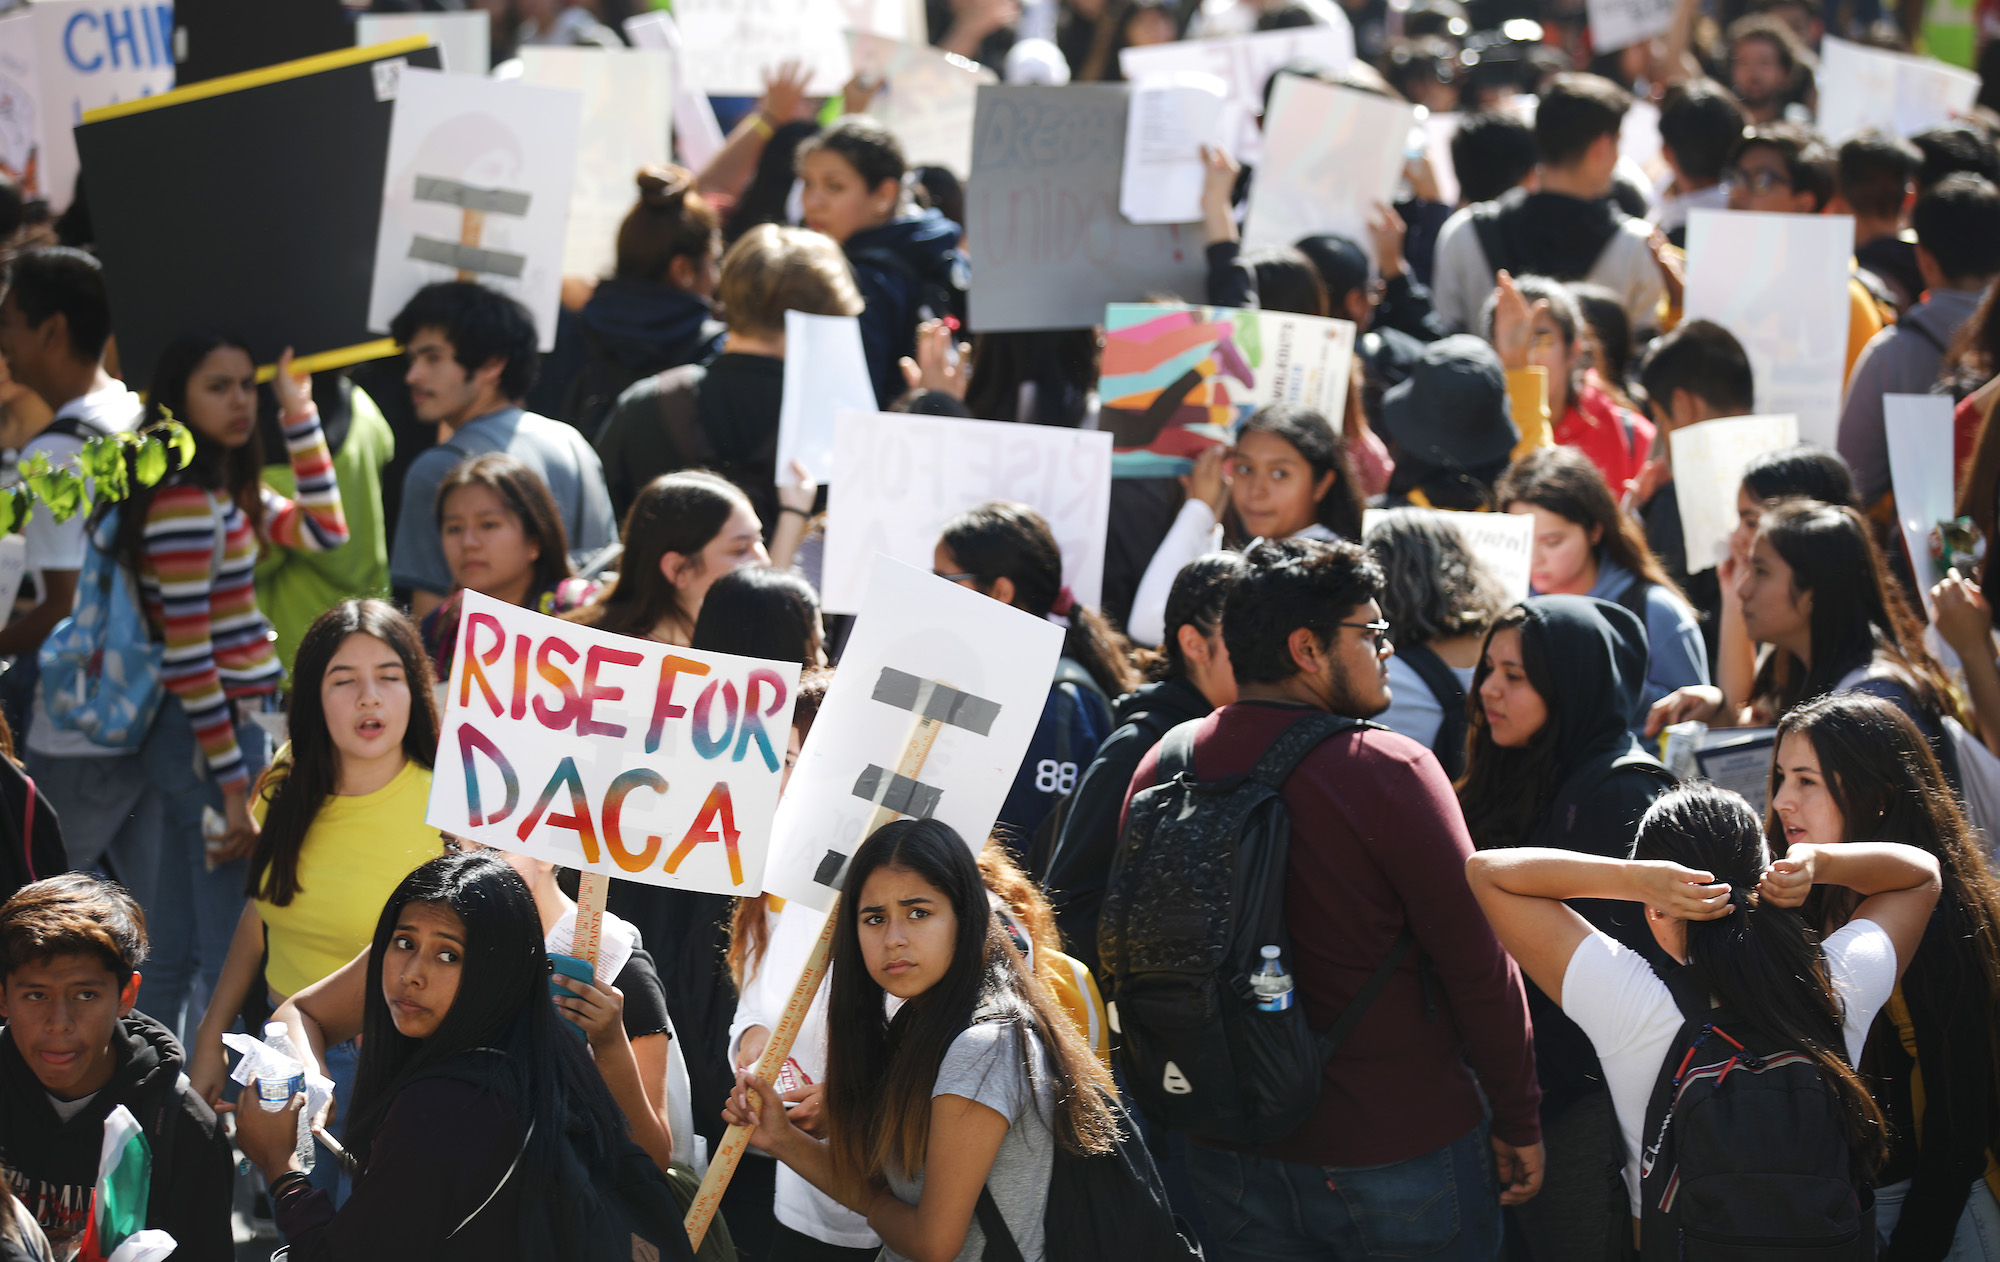 Rally Held For DACA Recipients In Los Angeles On Day Supreme Court Hears Case